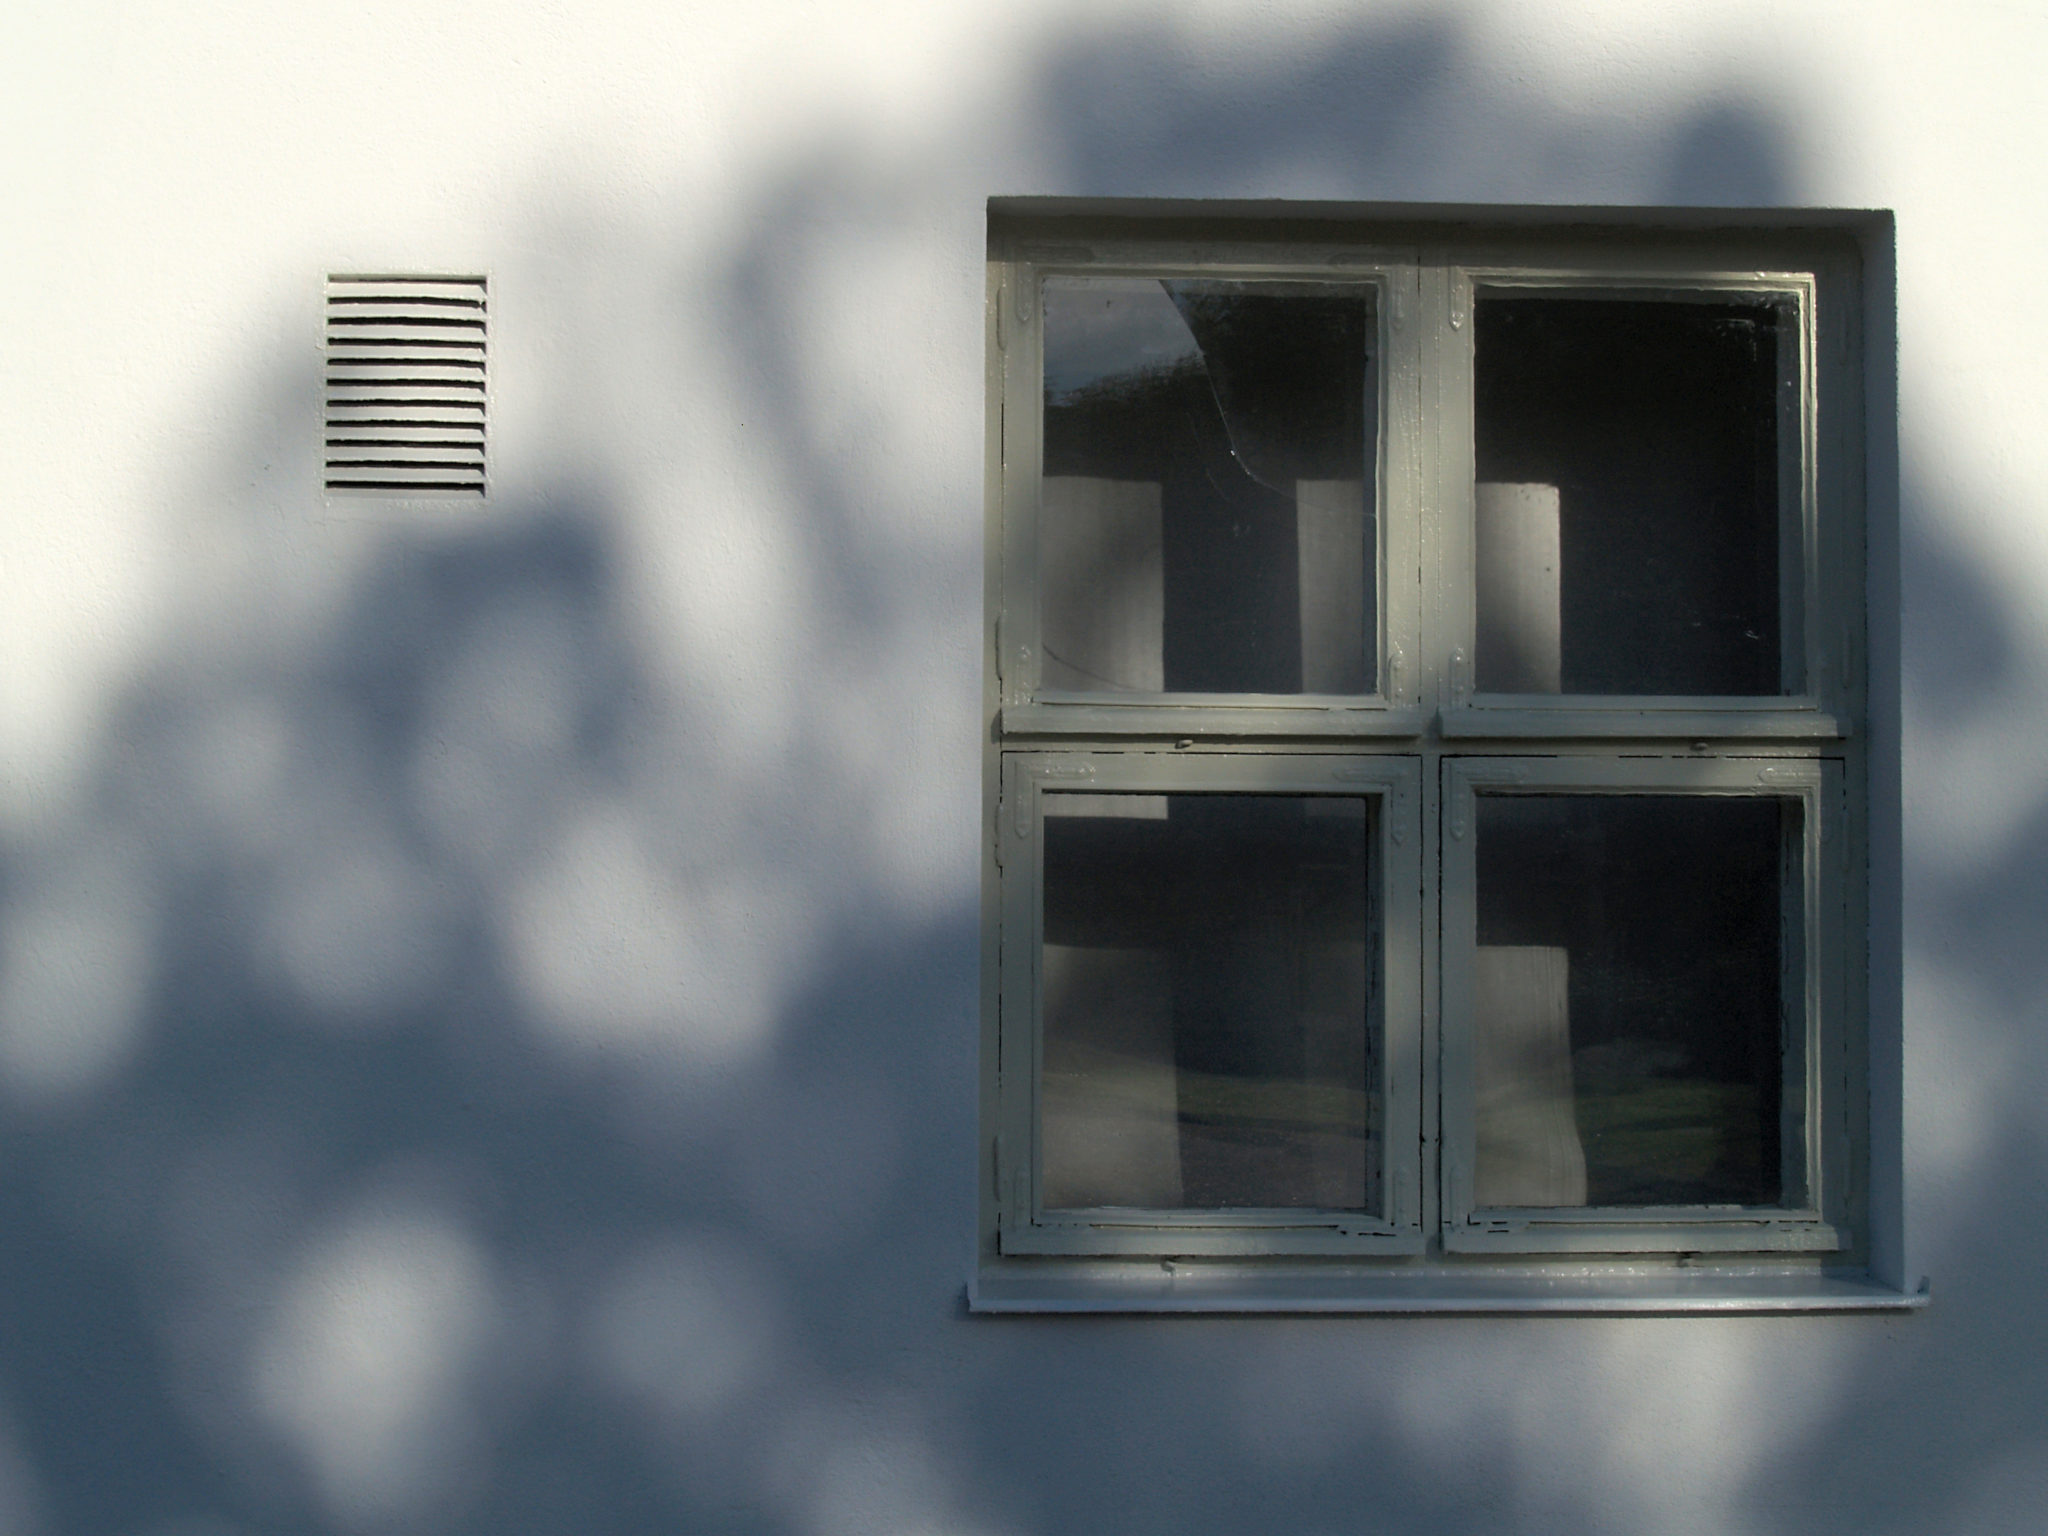 Ikkuna – Window / 2007